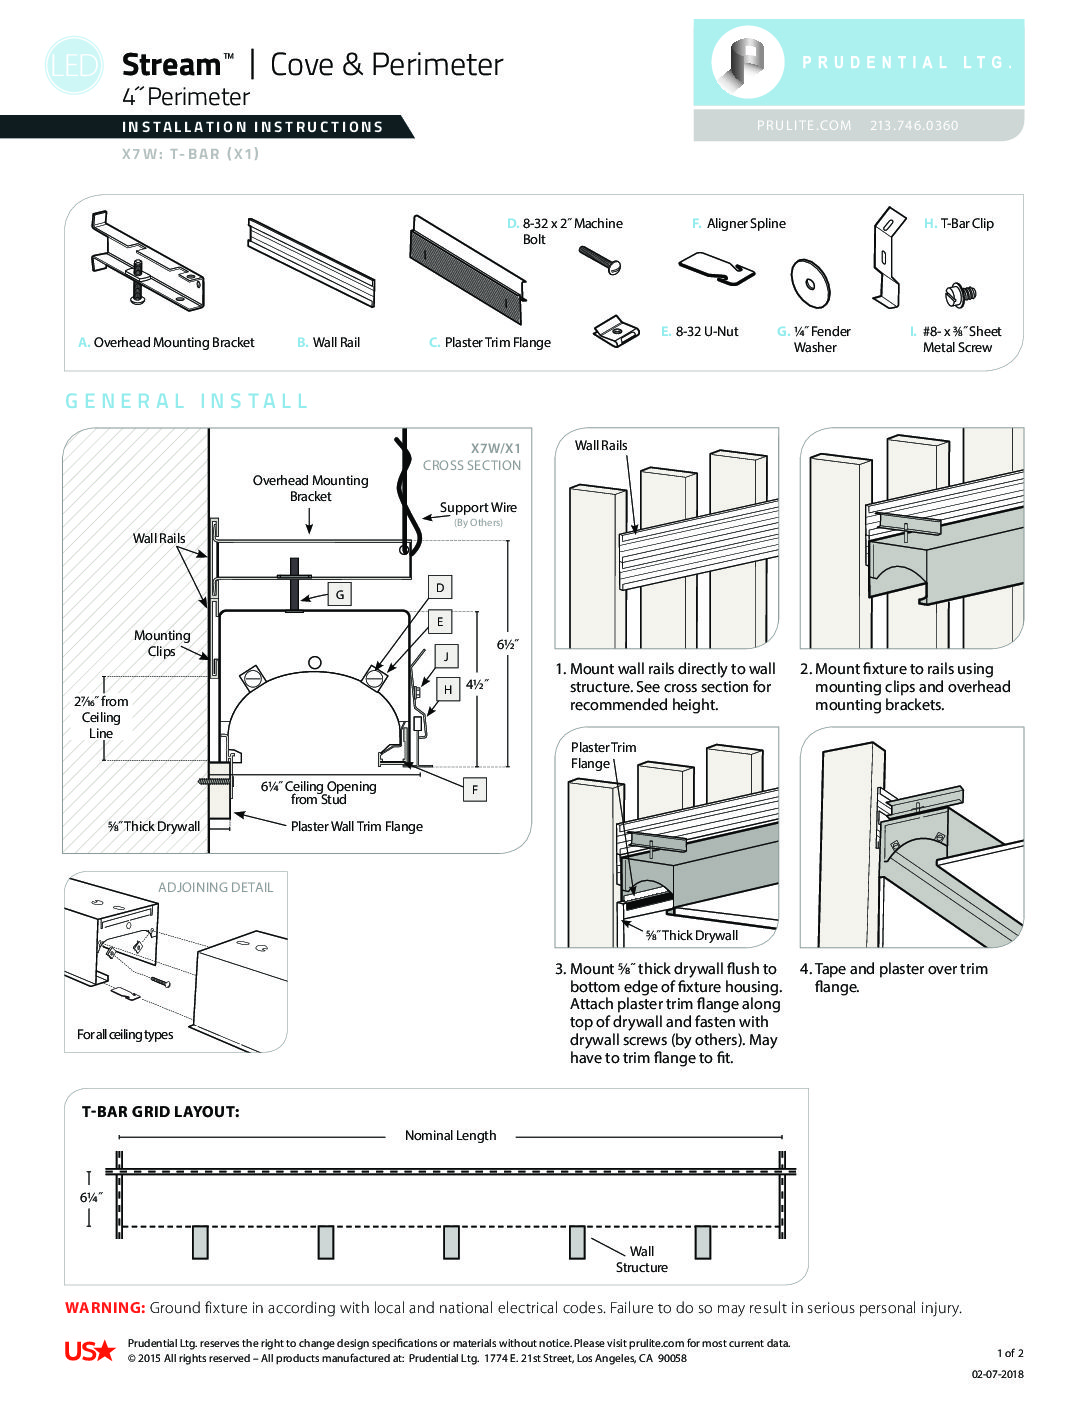 Installation Instructions - 5/20 - Prudential Lighting Company